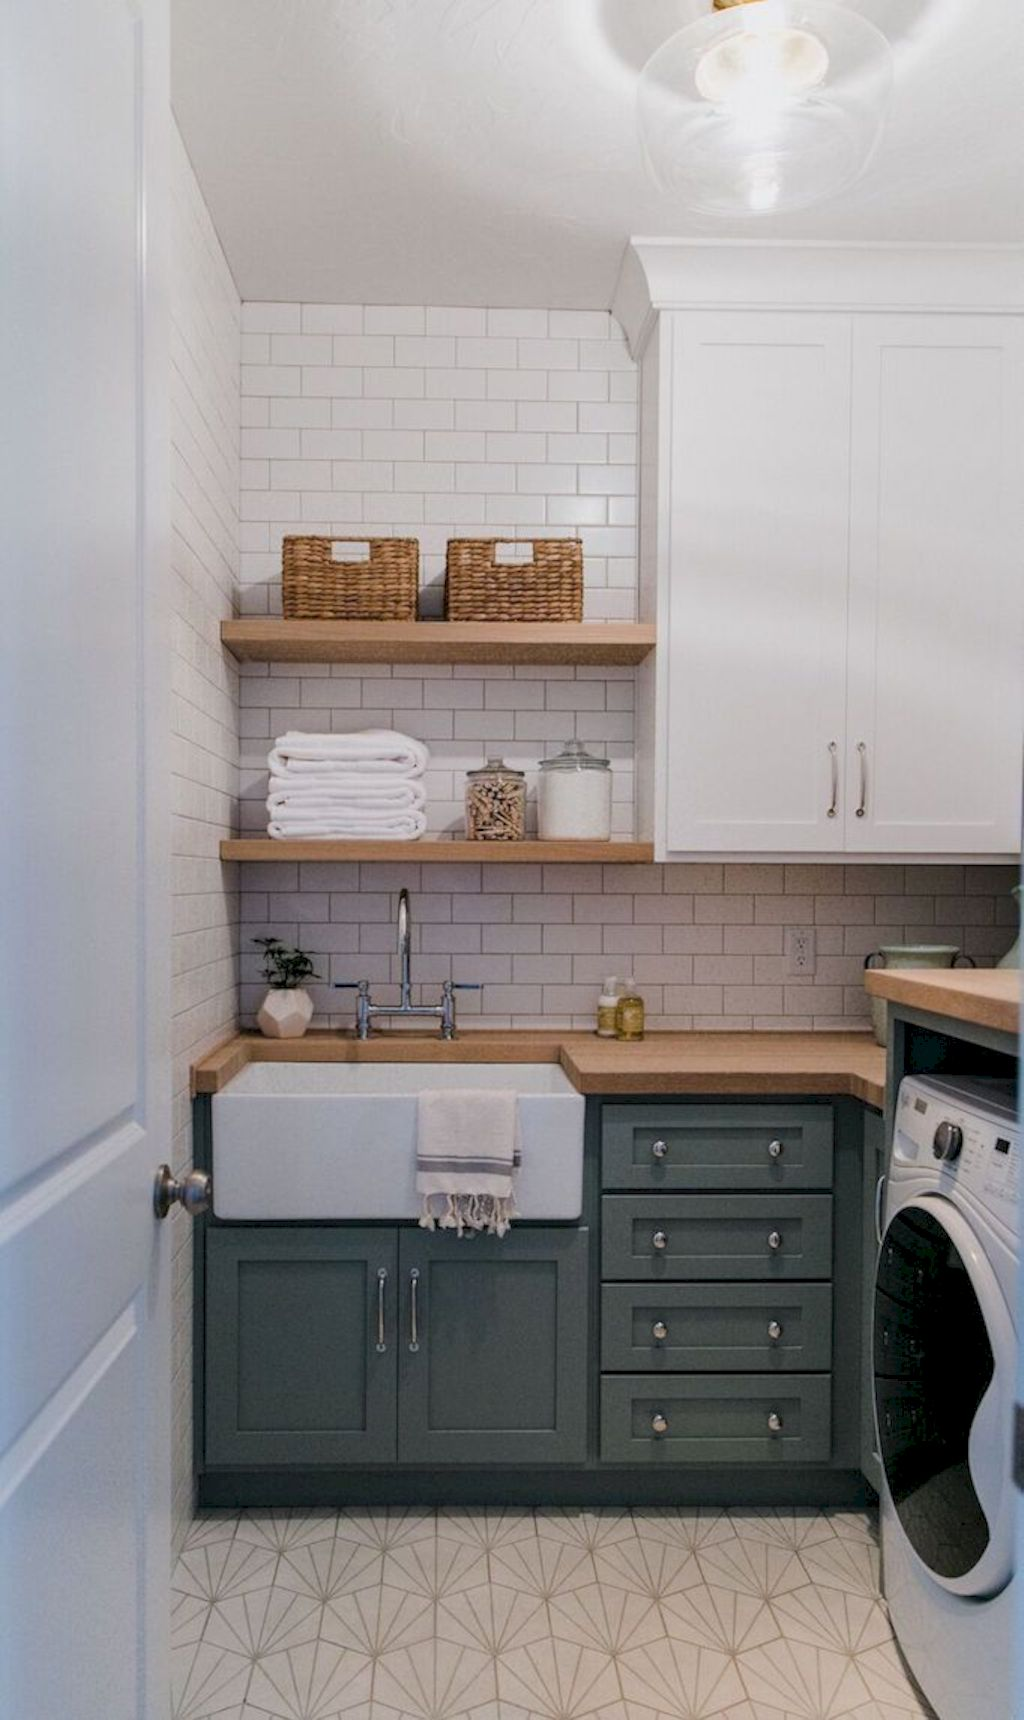 Making a simple laundry room update to maximize its function and look together with cheap accessories and simple layout designs Image 23